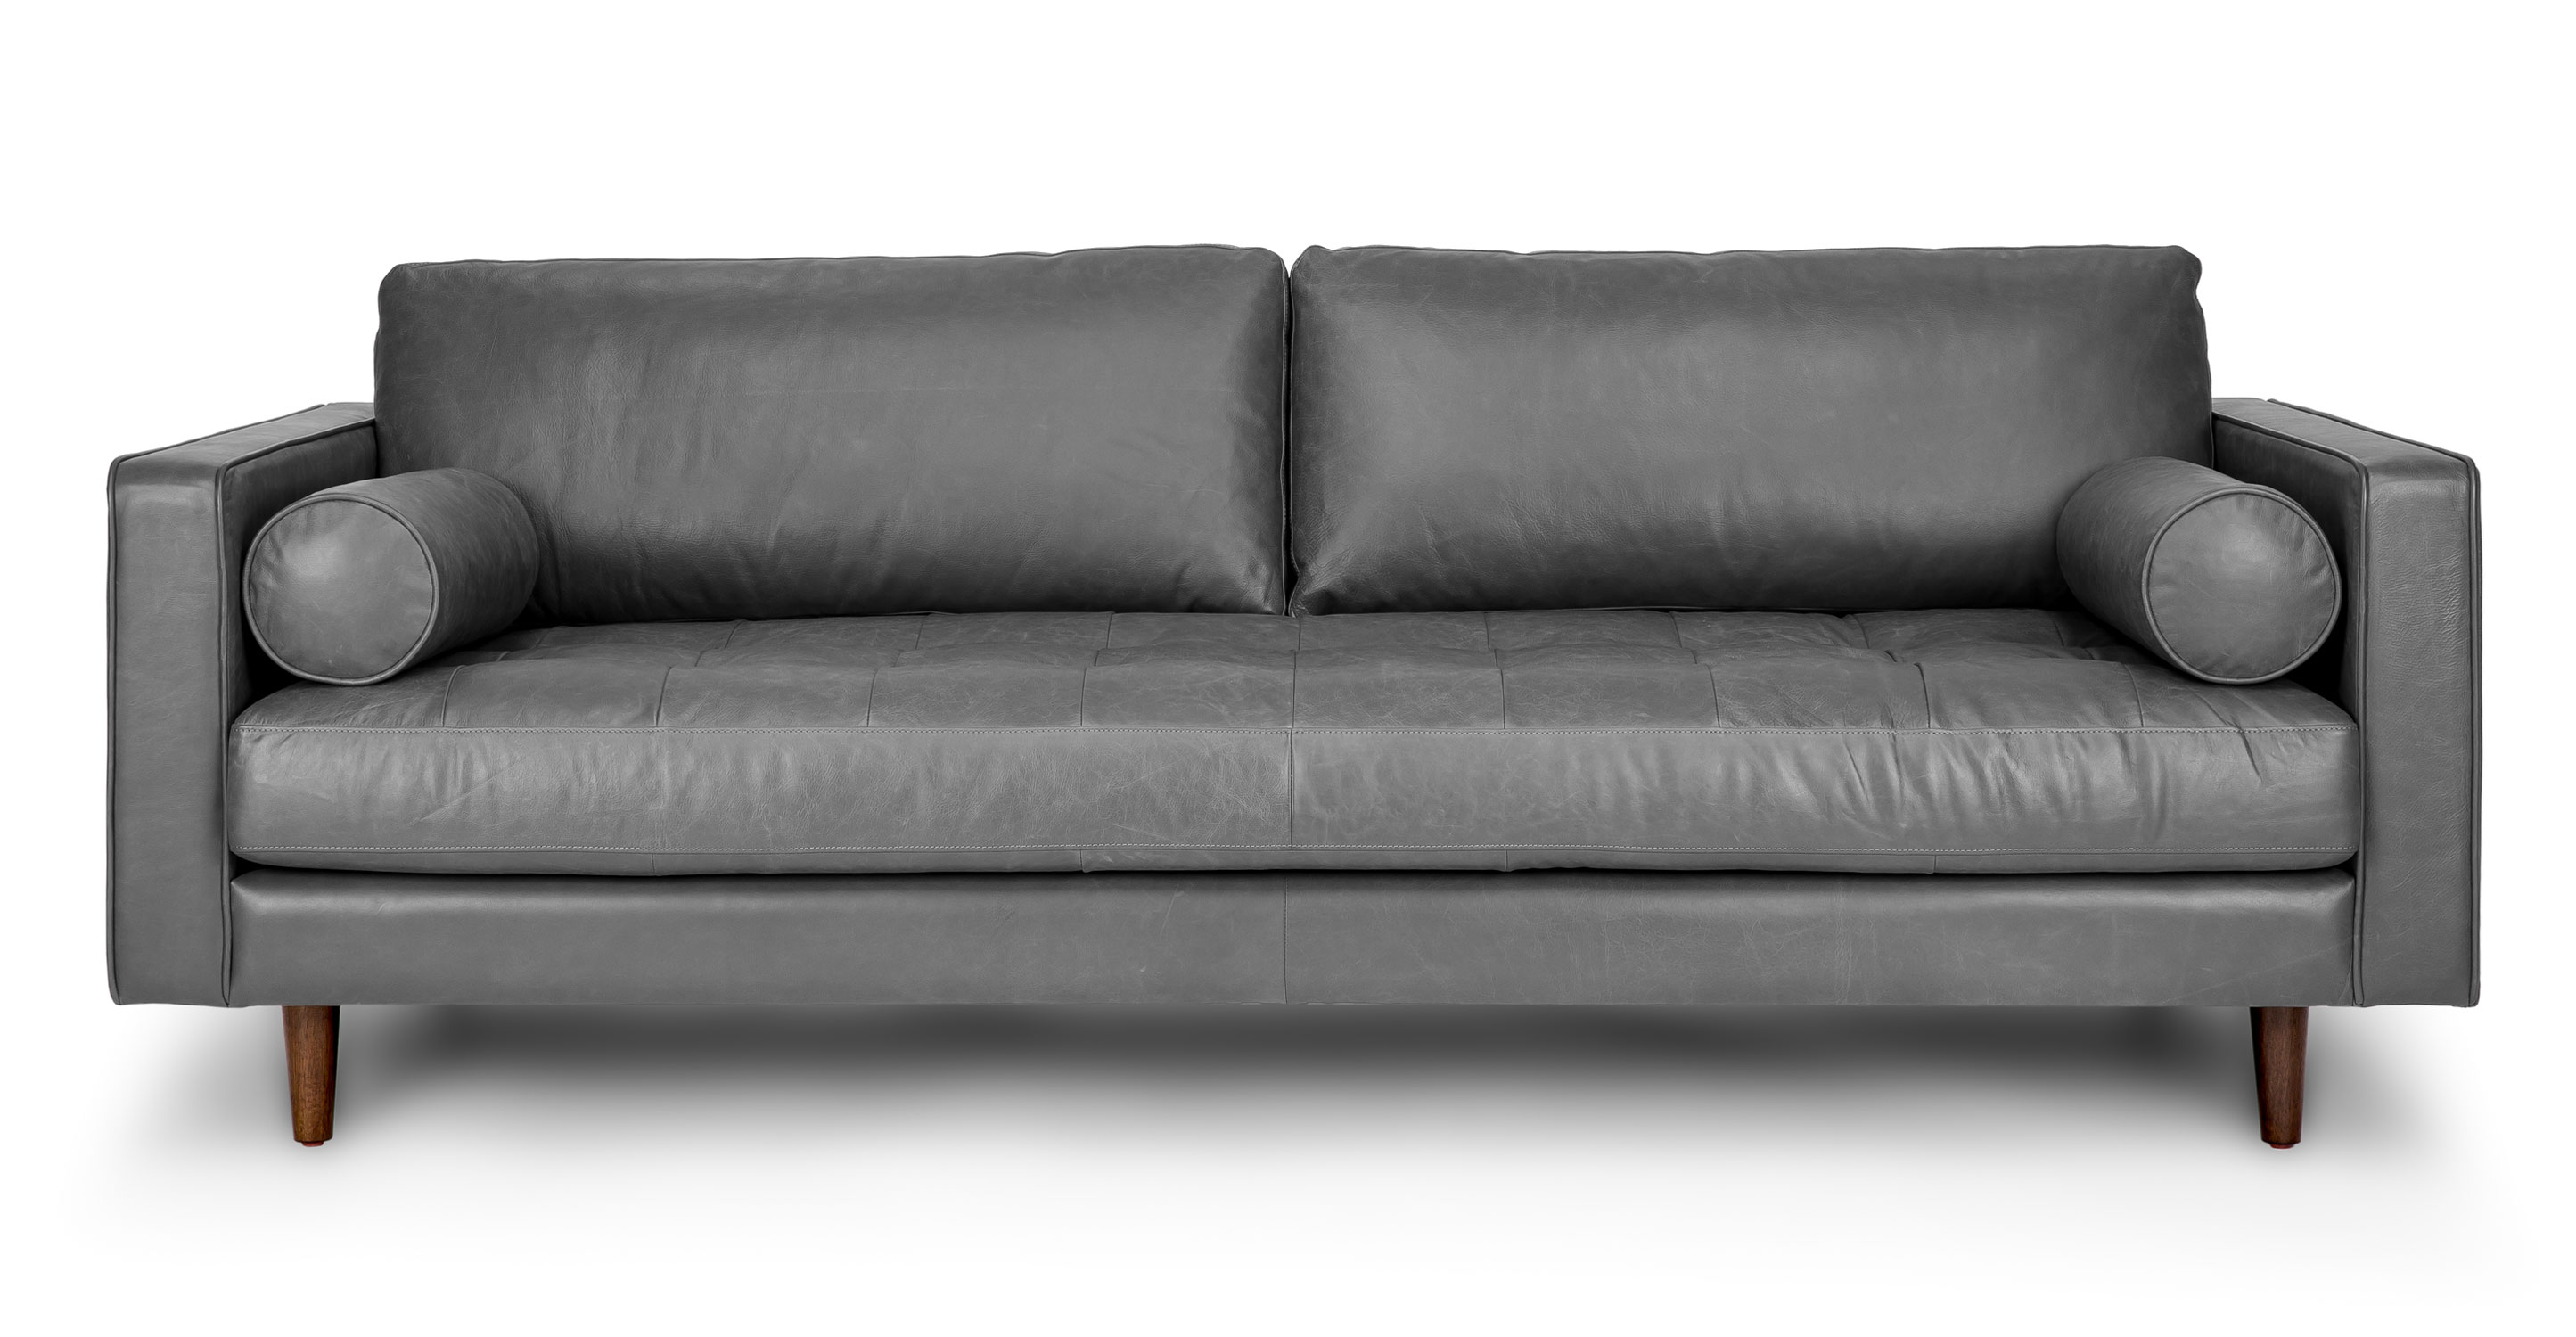 Very goods sven oxford gray sofa sofas article modern mid century and scandinavian furniture